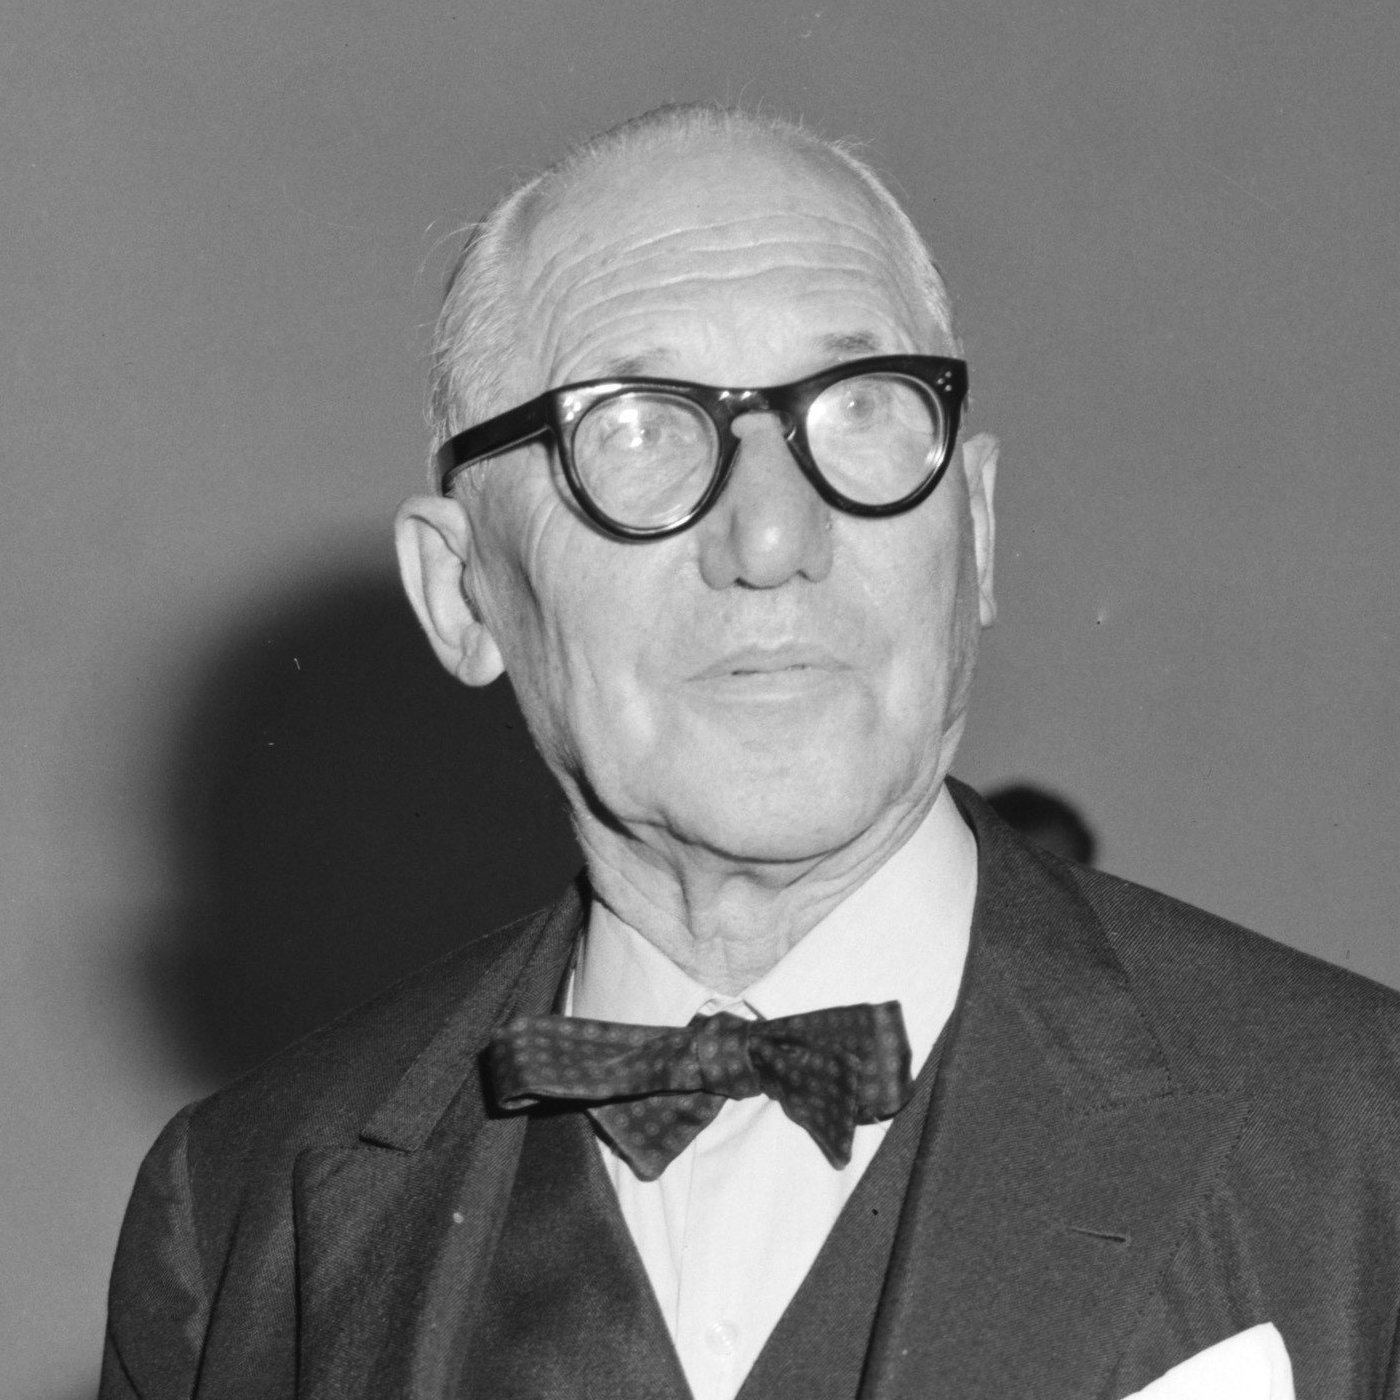 Image of Le Corbusier from Wikidata